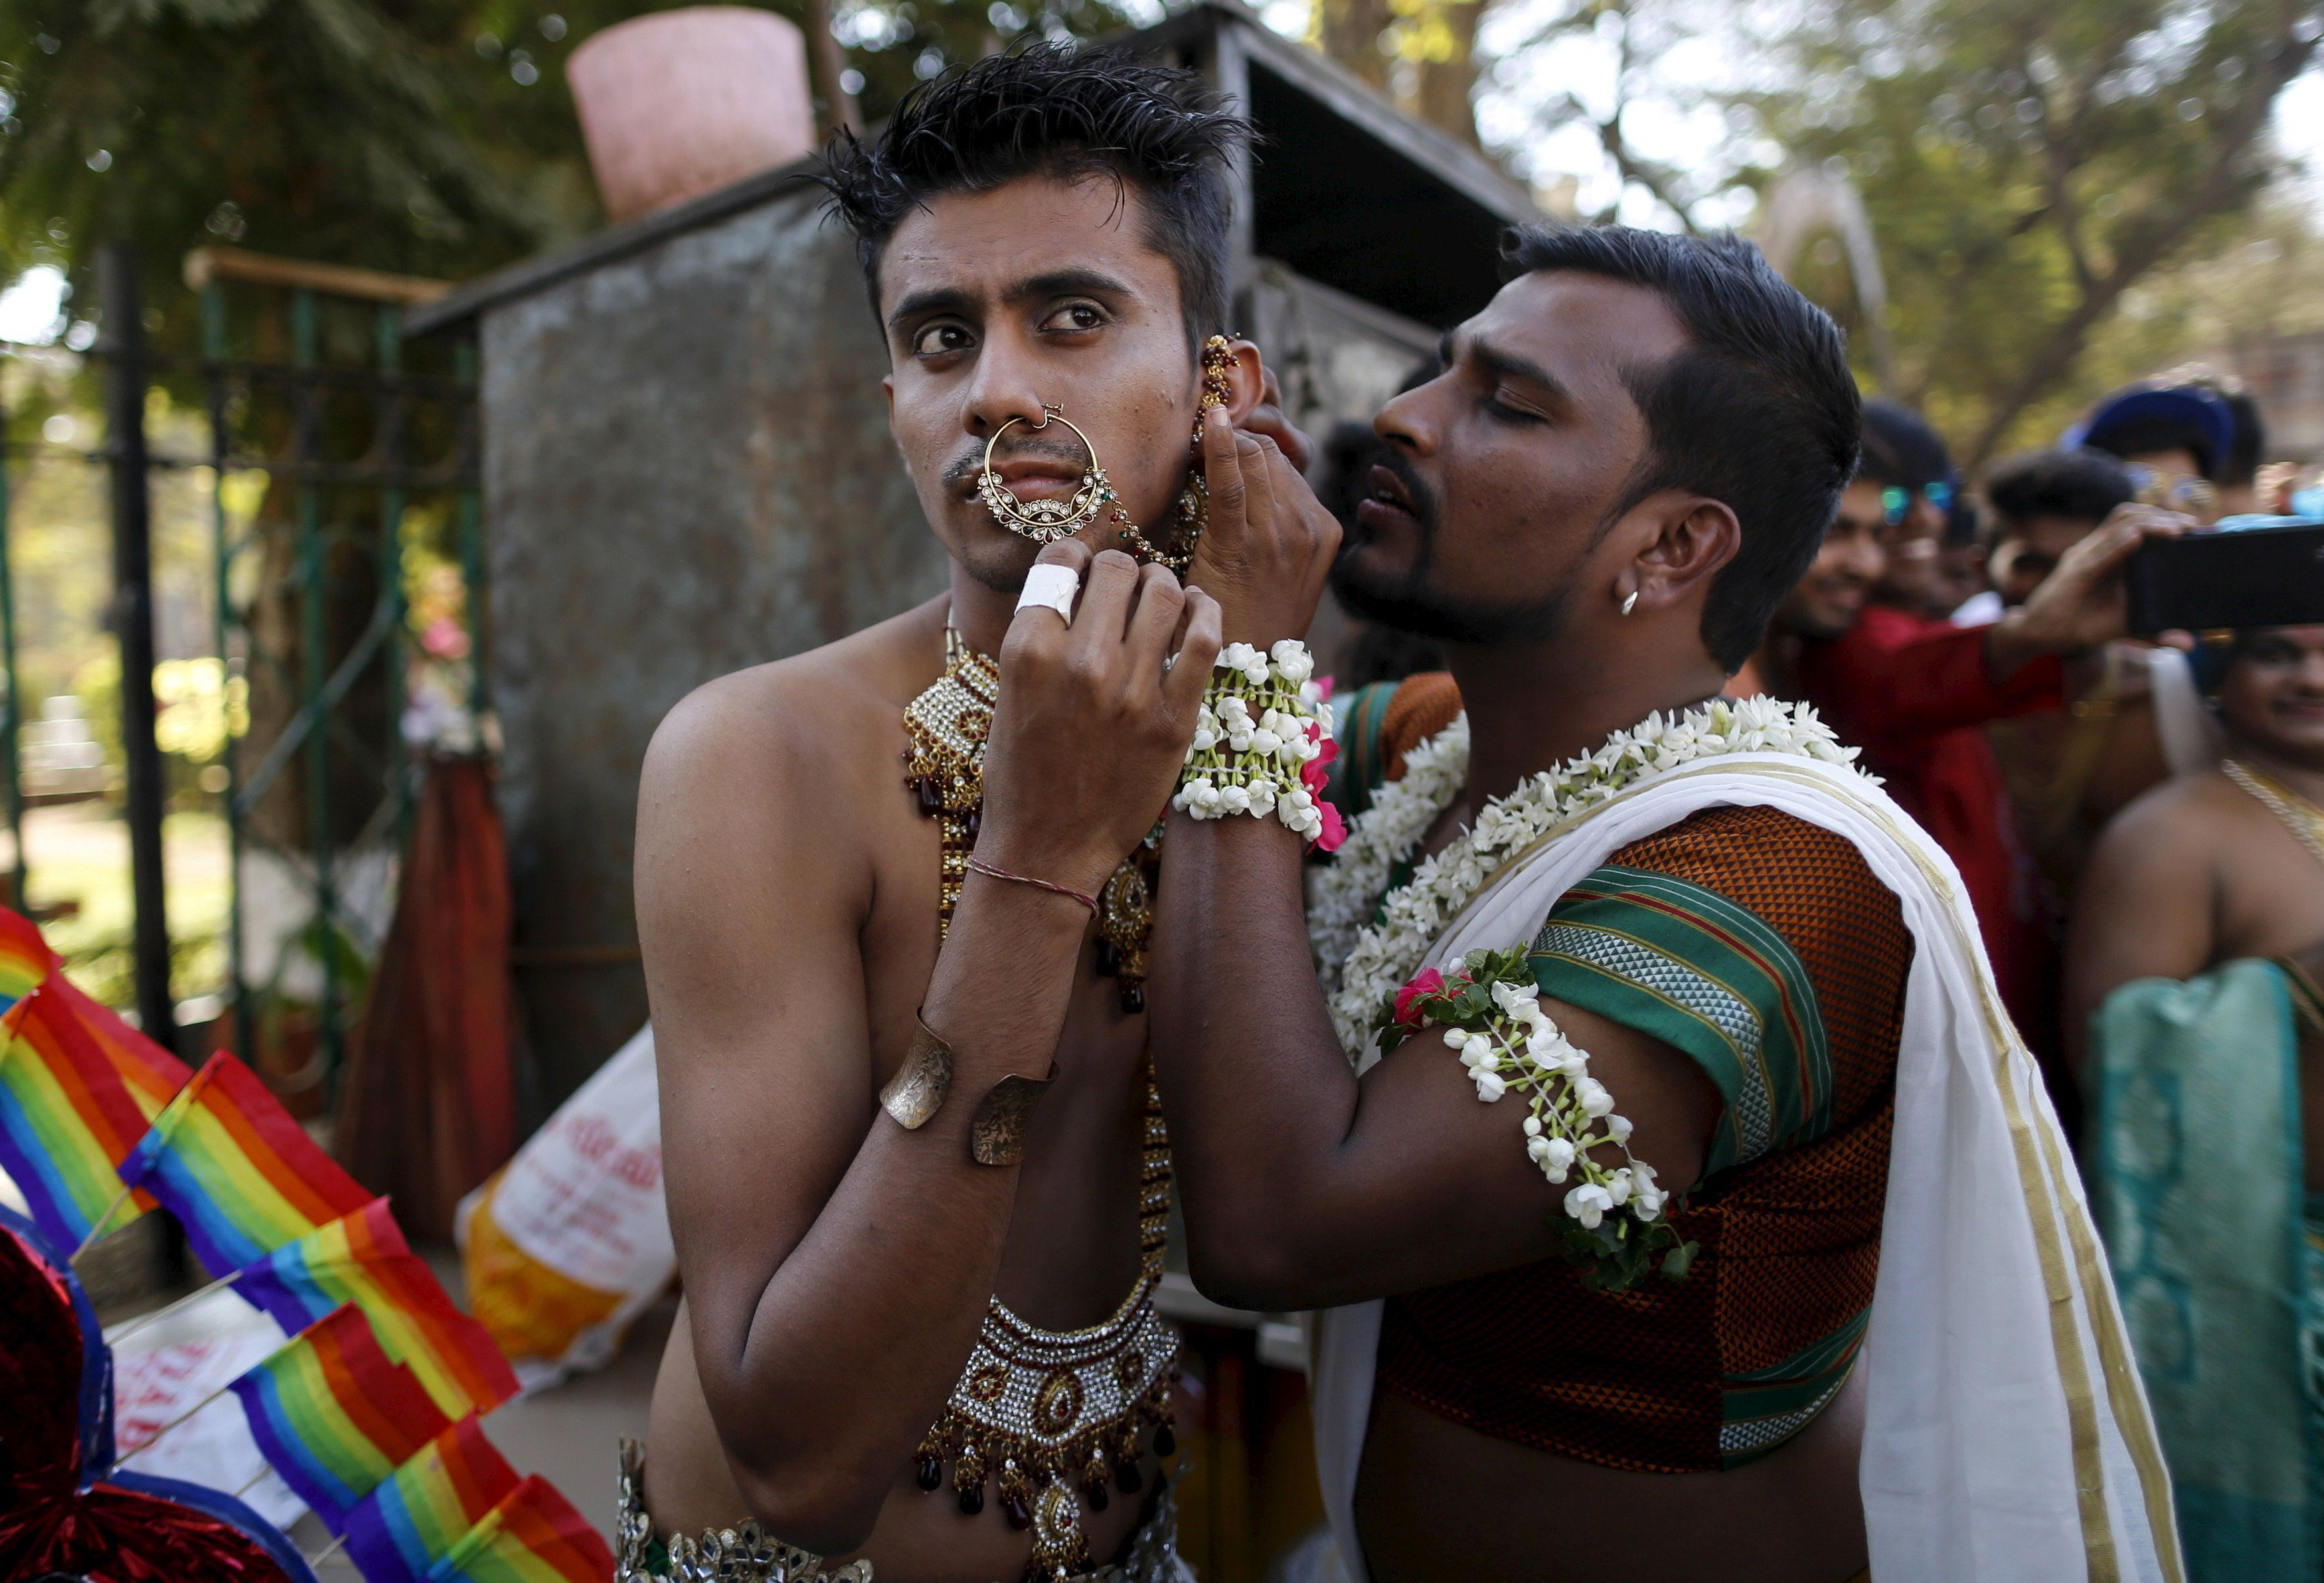 The decision is yet another setback for India's LGBT community.